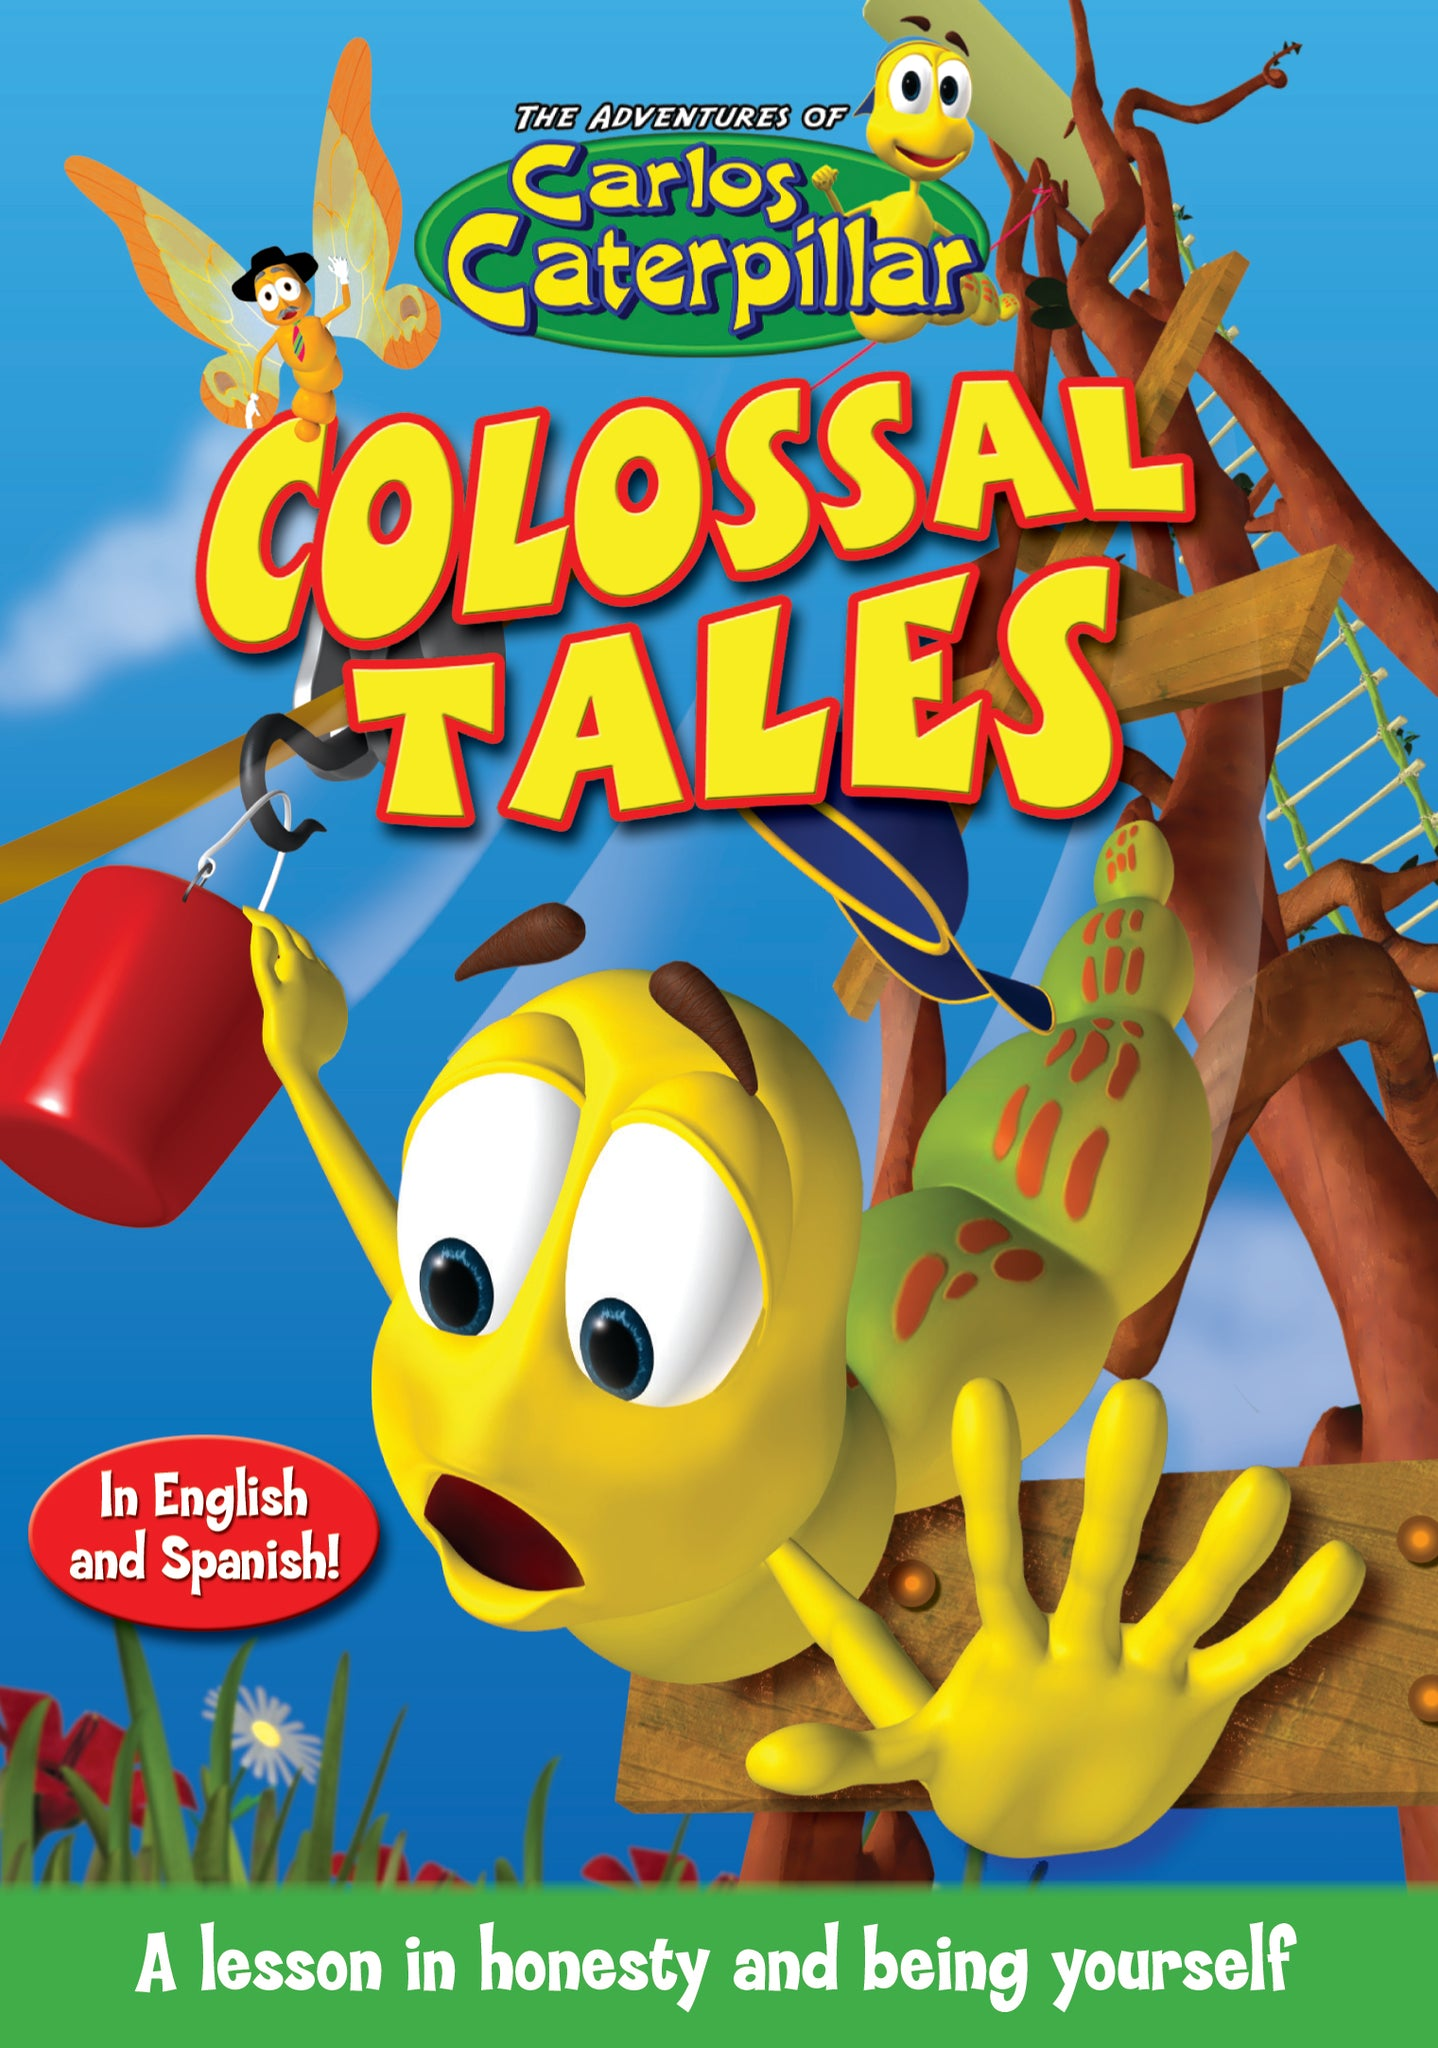 Carlos Caterpillar Episode 1 - Colossal Tales DVD cover